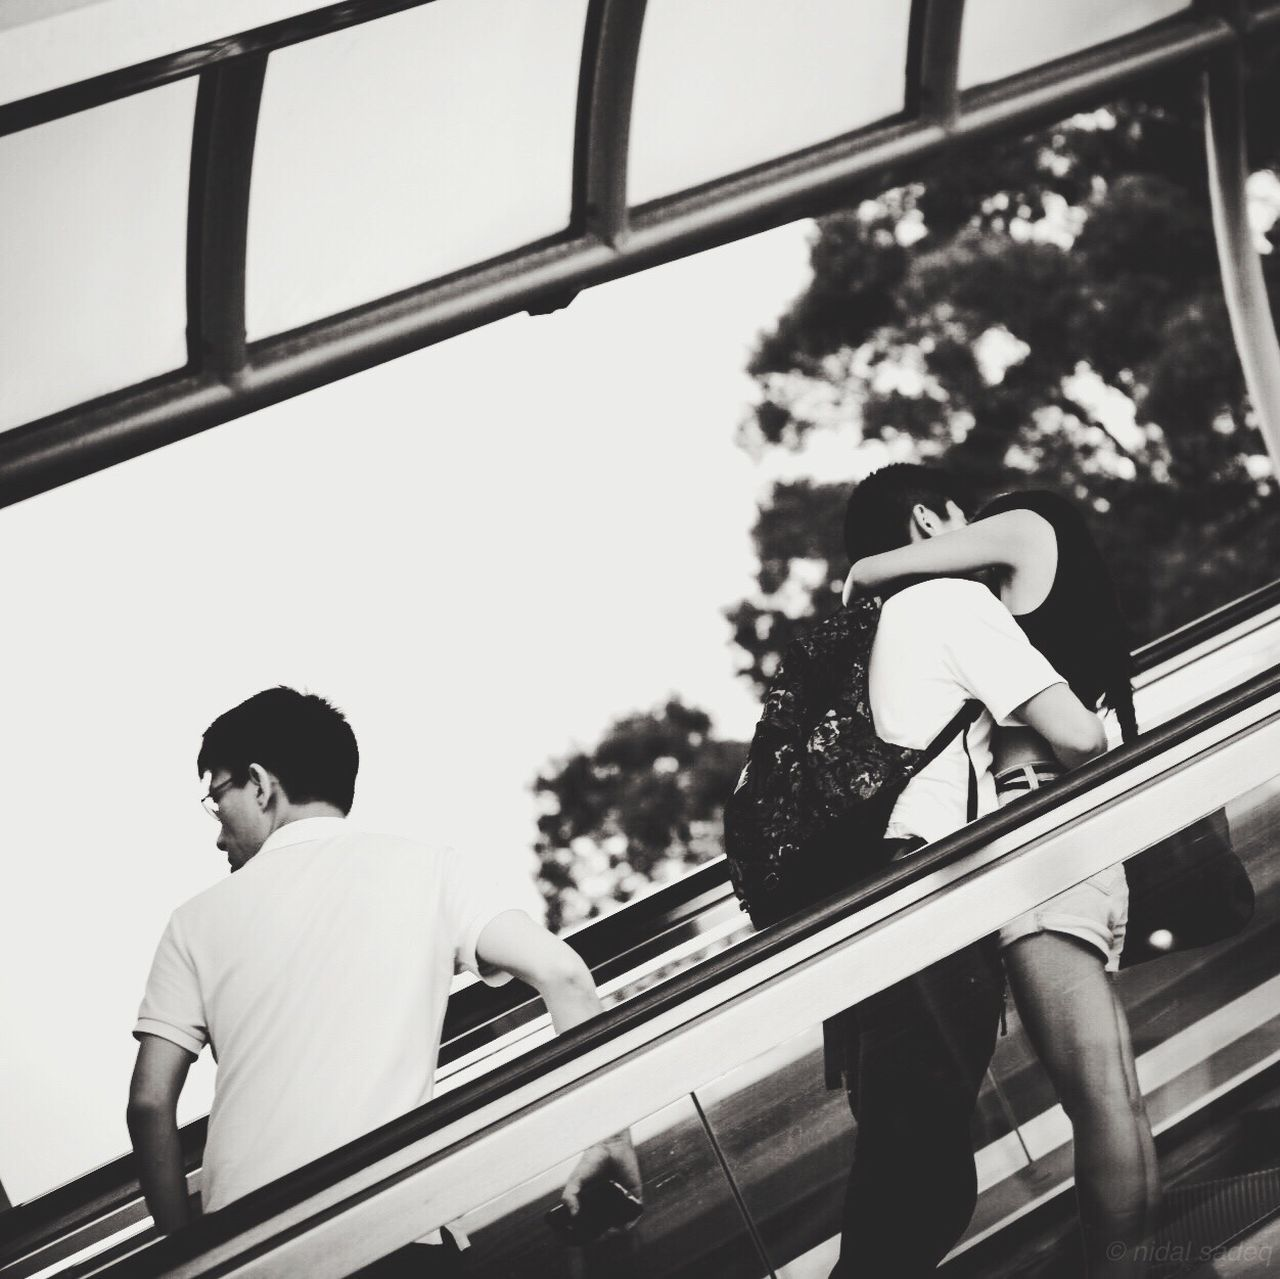 railing, day, transportation, real people, childhood, one person, outdoors, clear sky, sky, tree, close-up, people